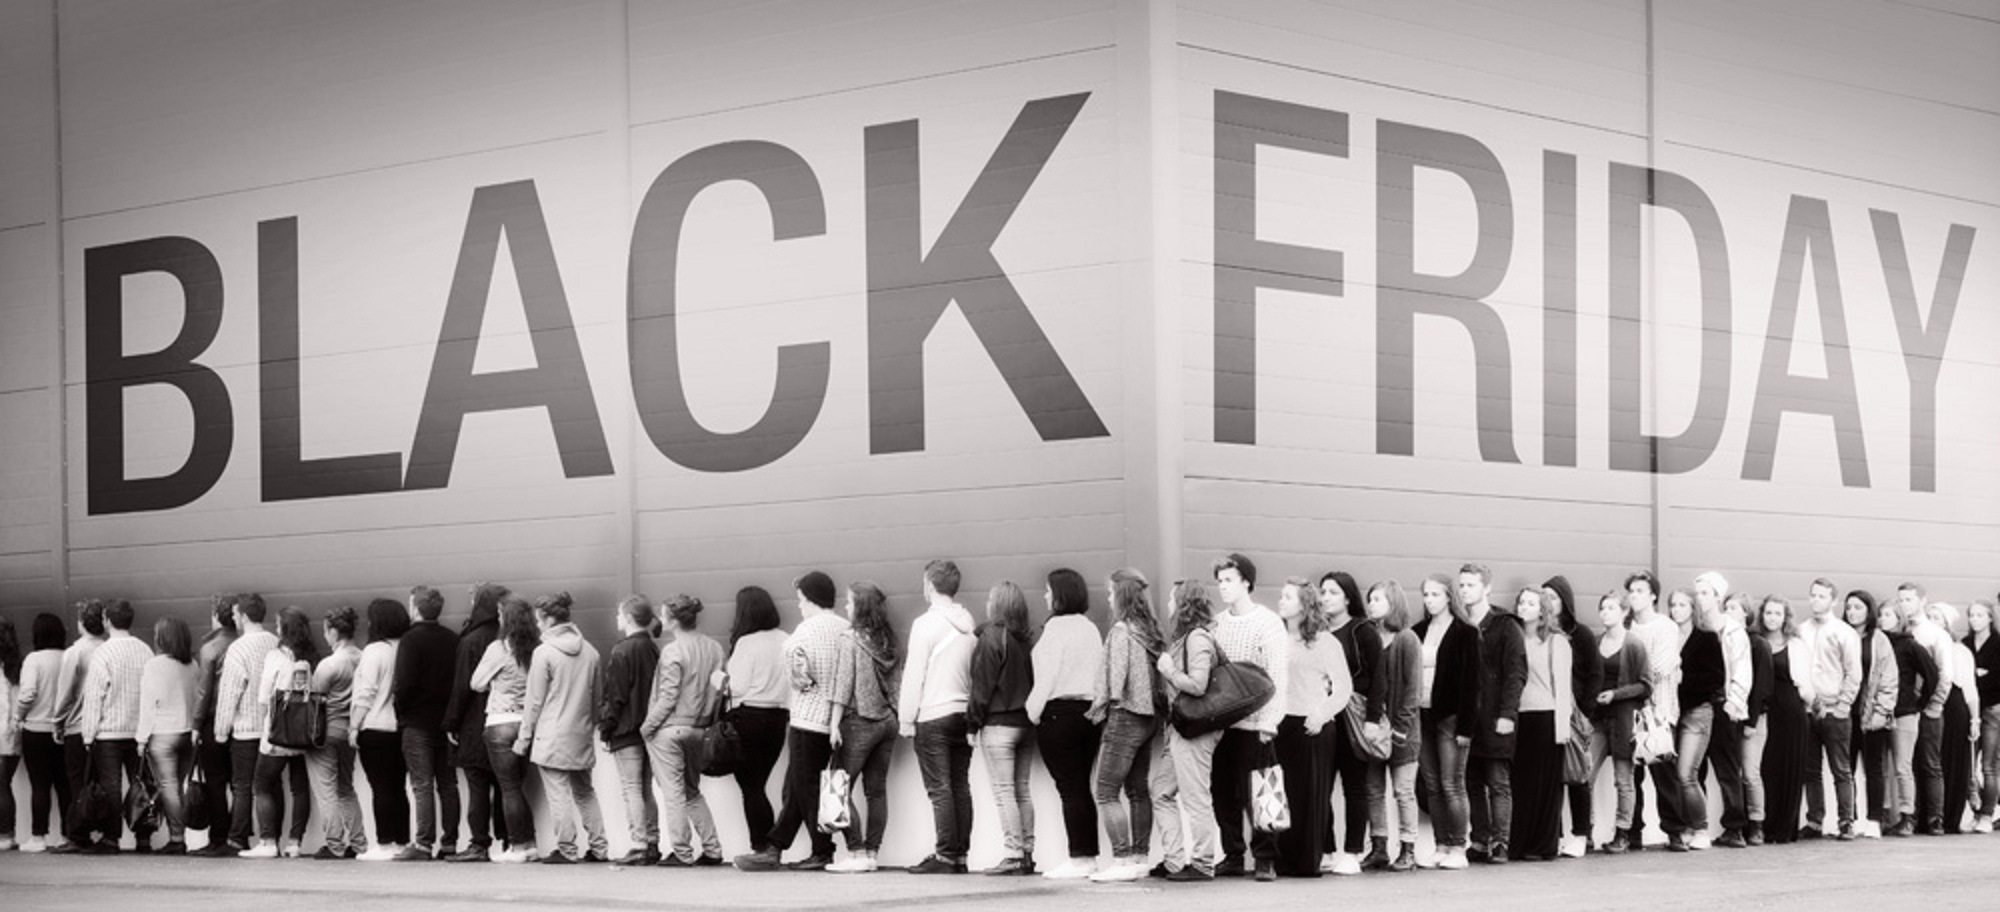 Black Friday Conexao Empreendedora